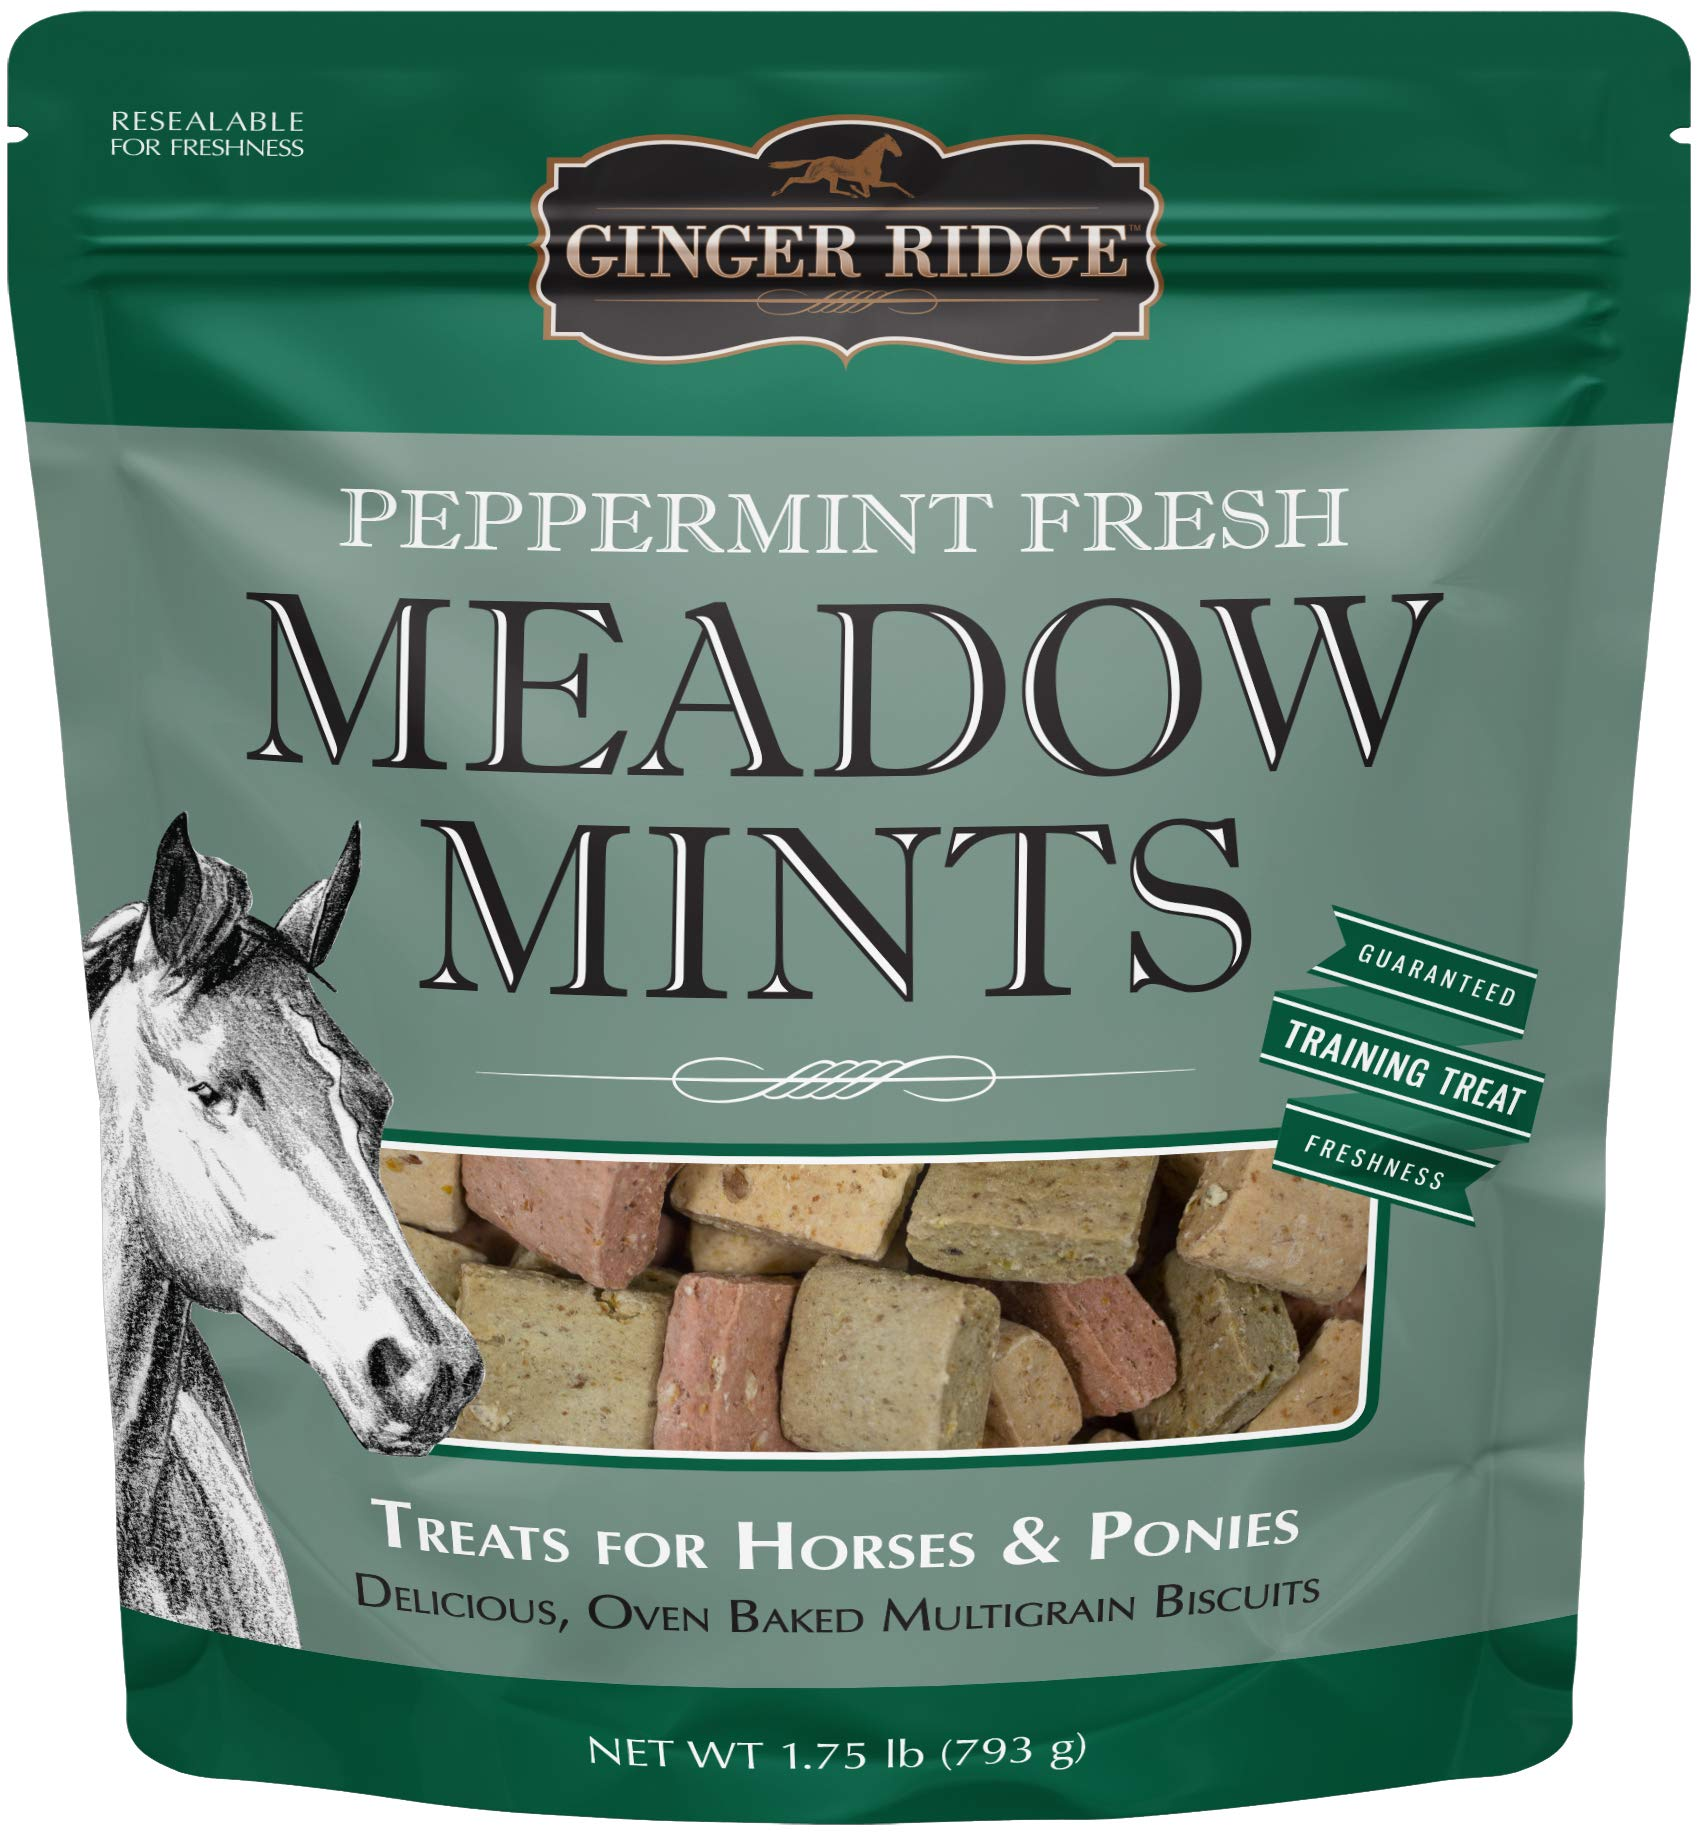 Ginger Ridge Meadow Mints Horse Treats, Peppermint Fresh, 1.75 Lb by Ginger Ridge